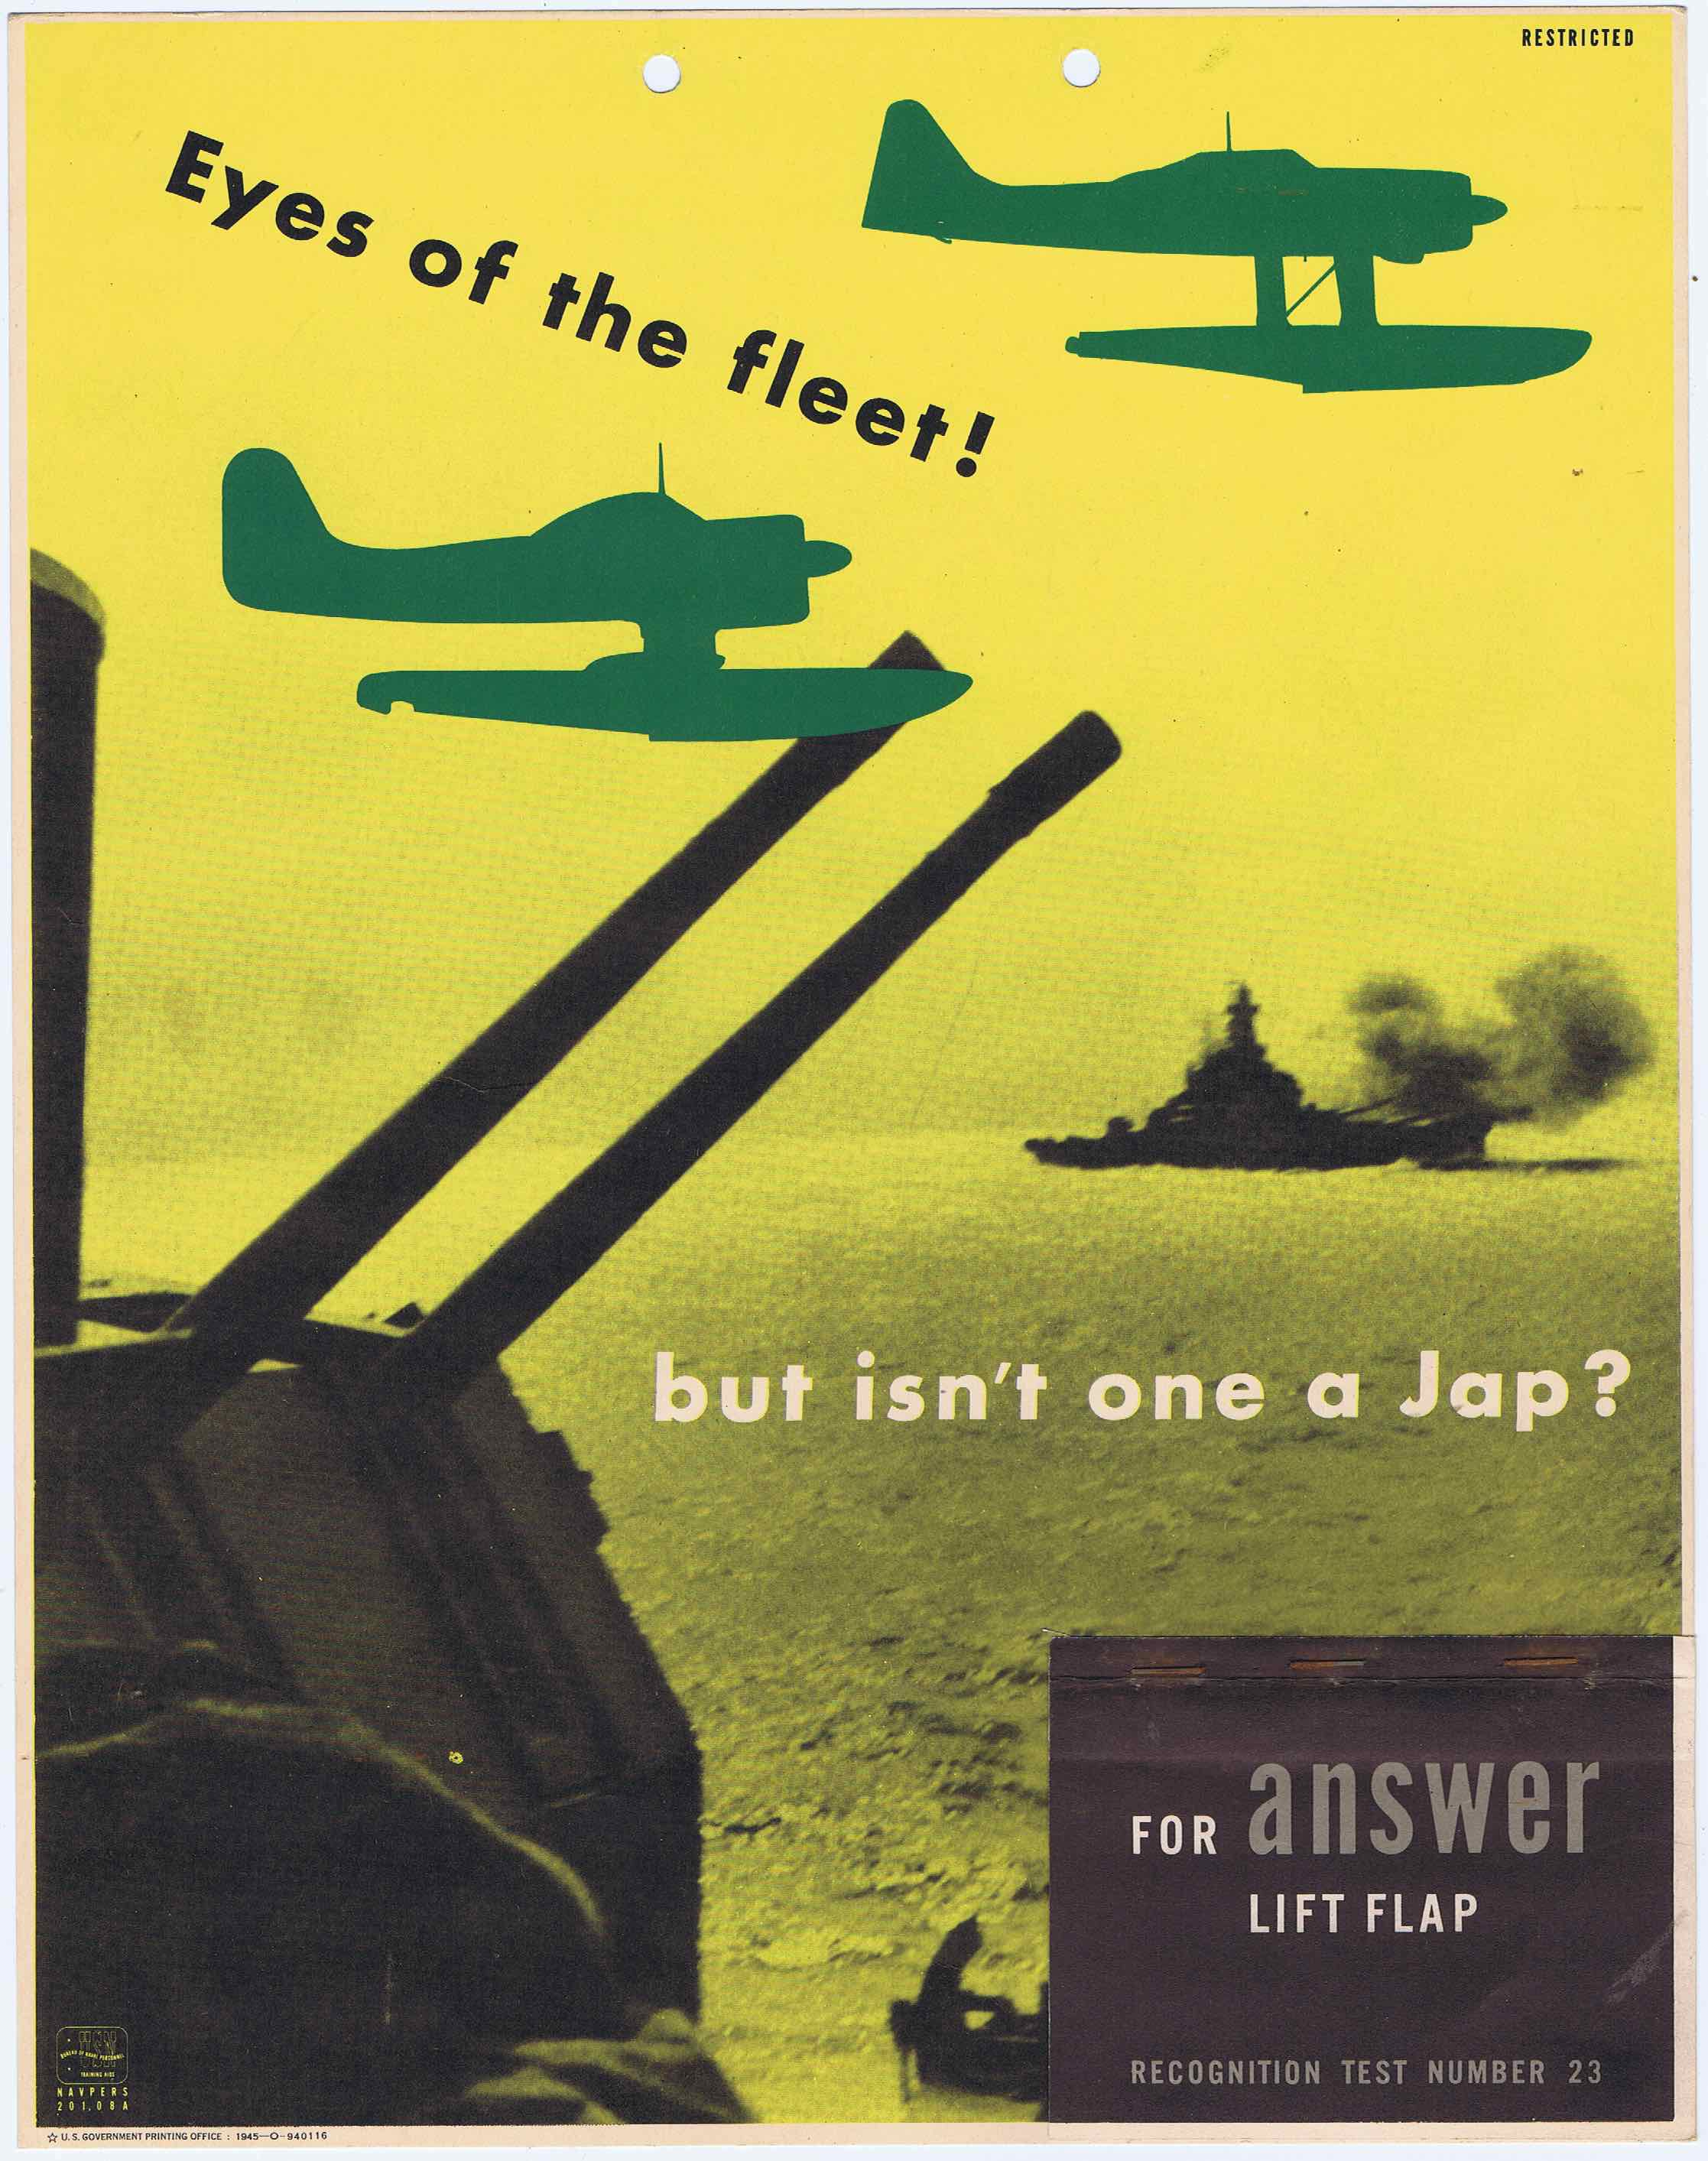 J317	EYES OF THE FLEET - BUT ISN'T ONE A JAP? - U.S. ARMY AIR FORCE RECOGNITION POSTER